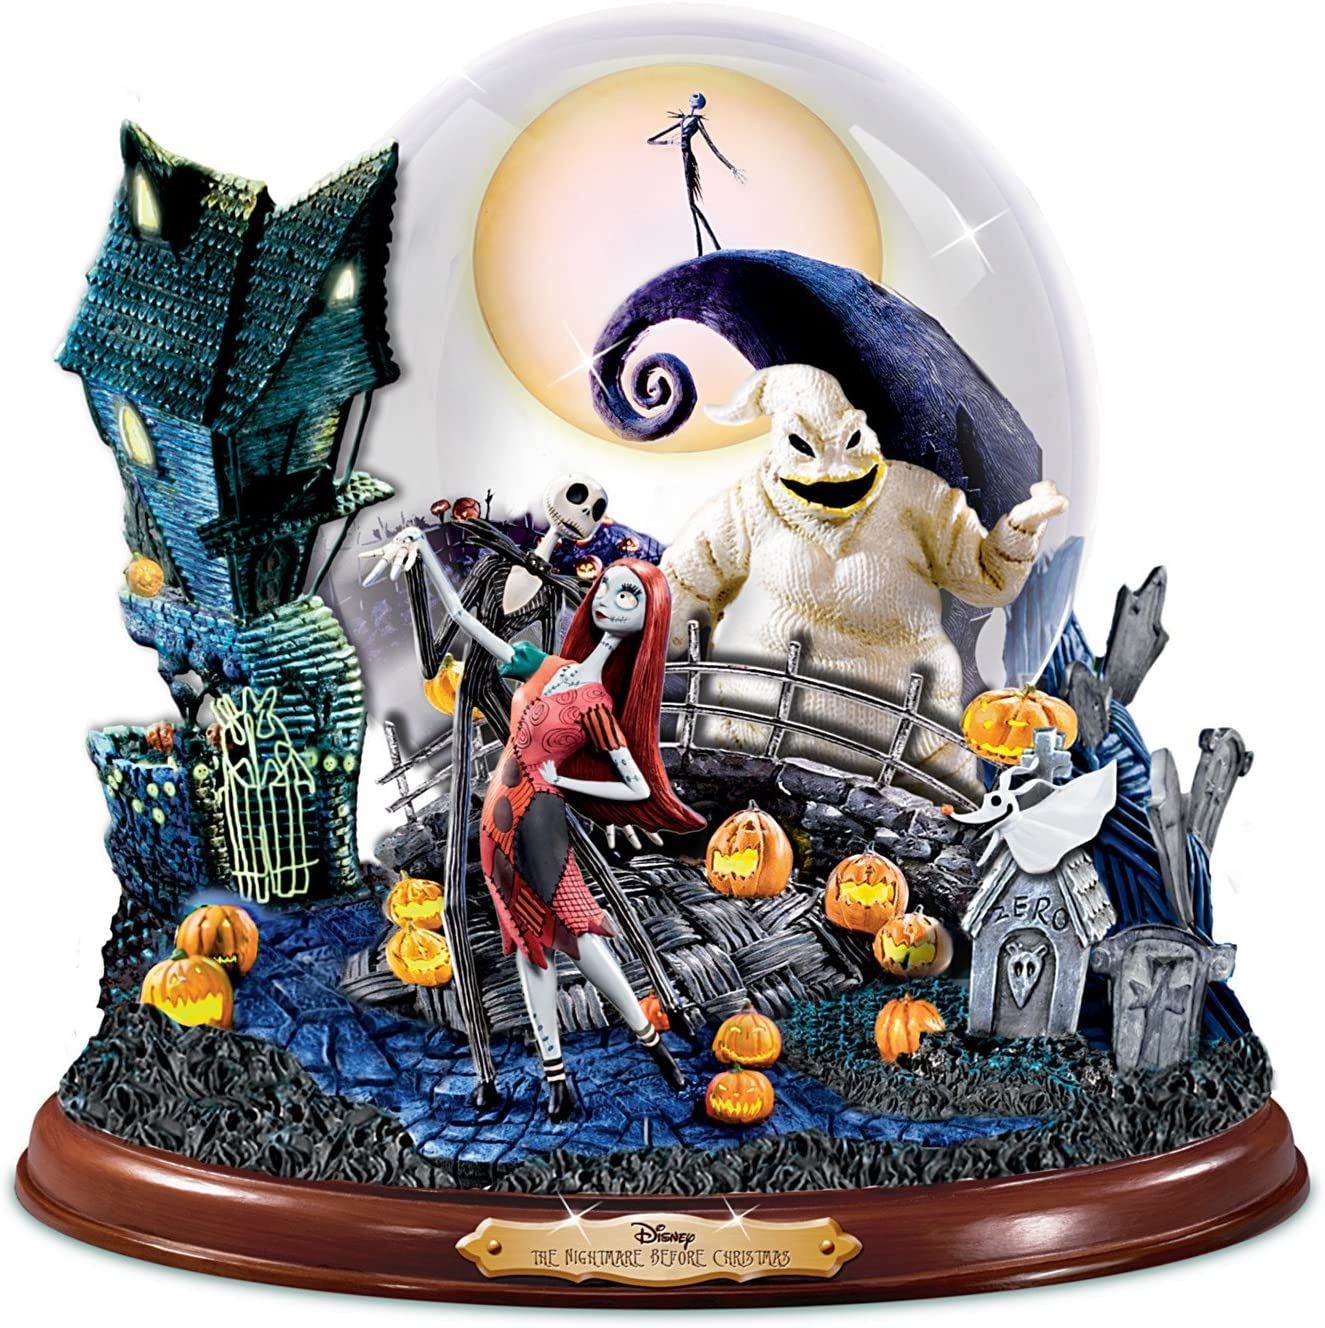 The Bradford Exchange Disney Tim Burton's The Nightmare Before Christmas Illuminated Musical Snowglobe